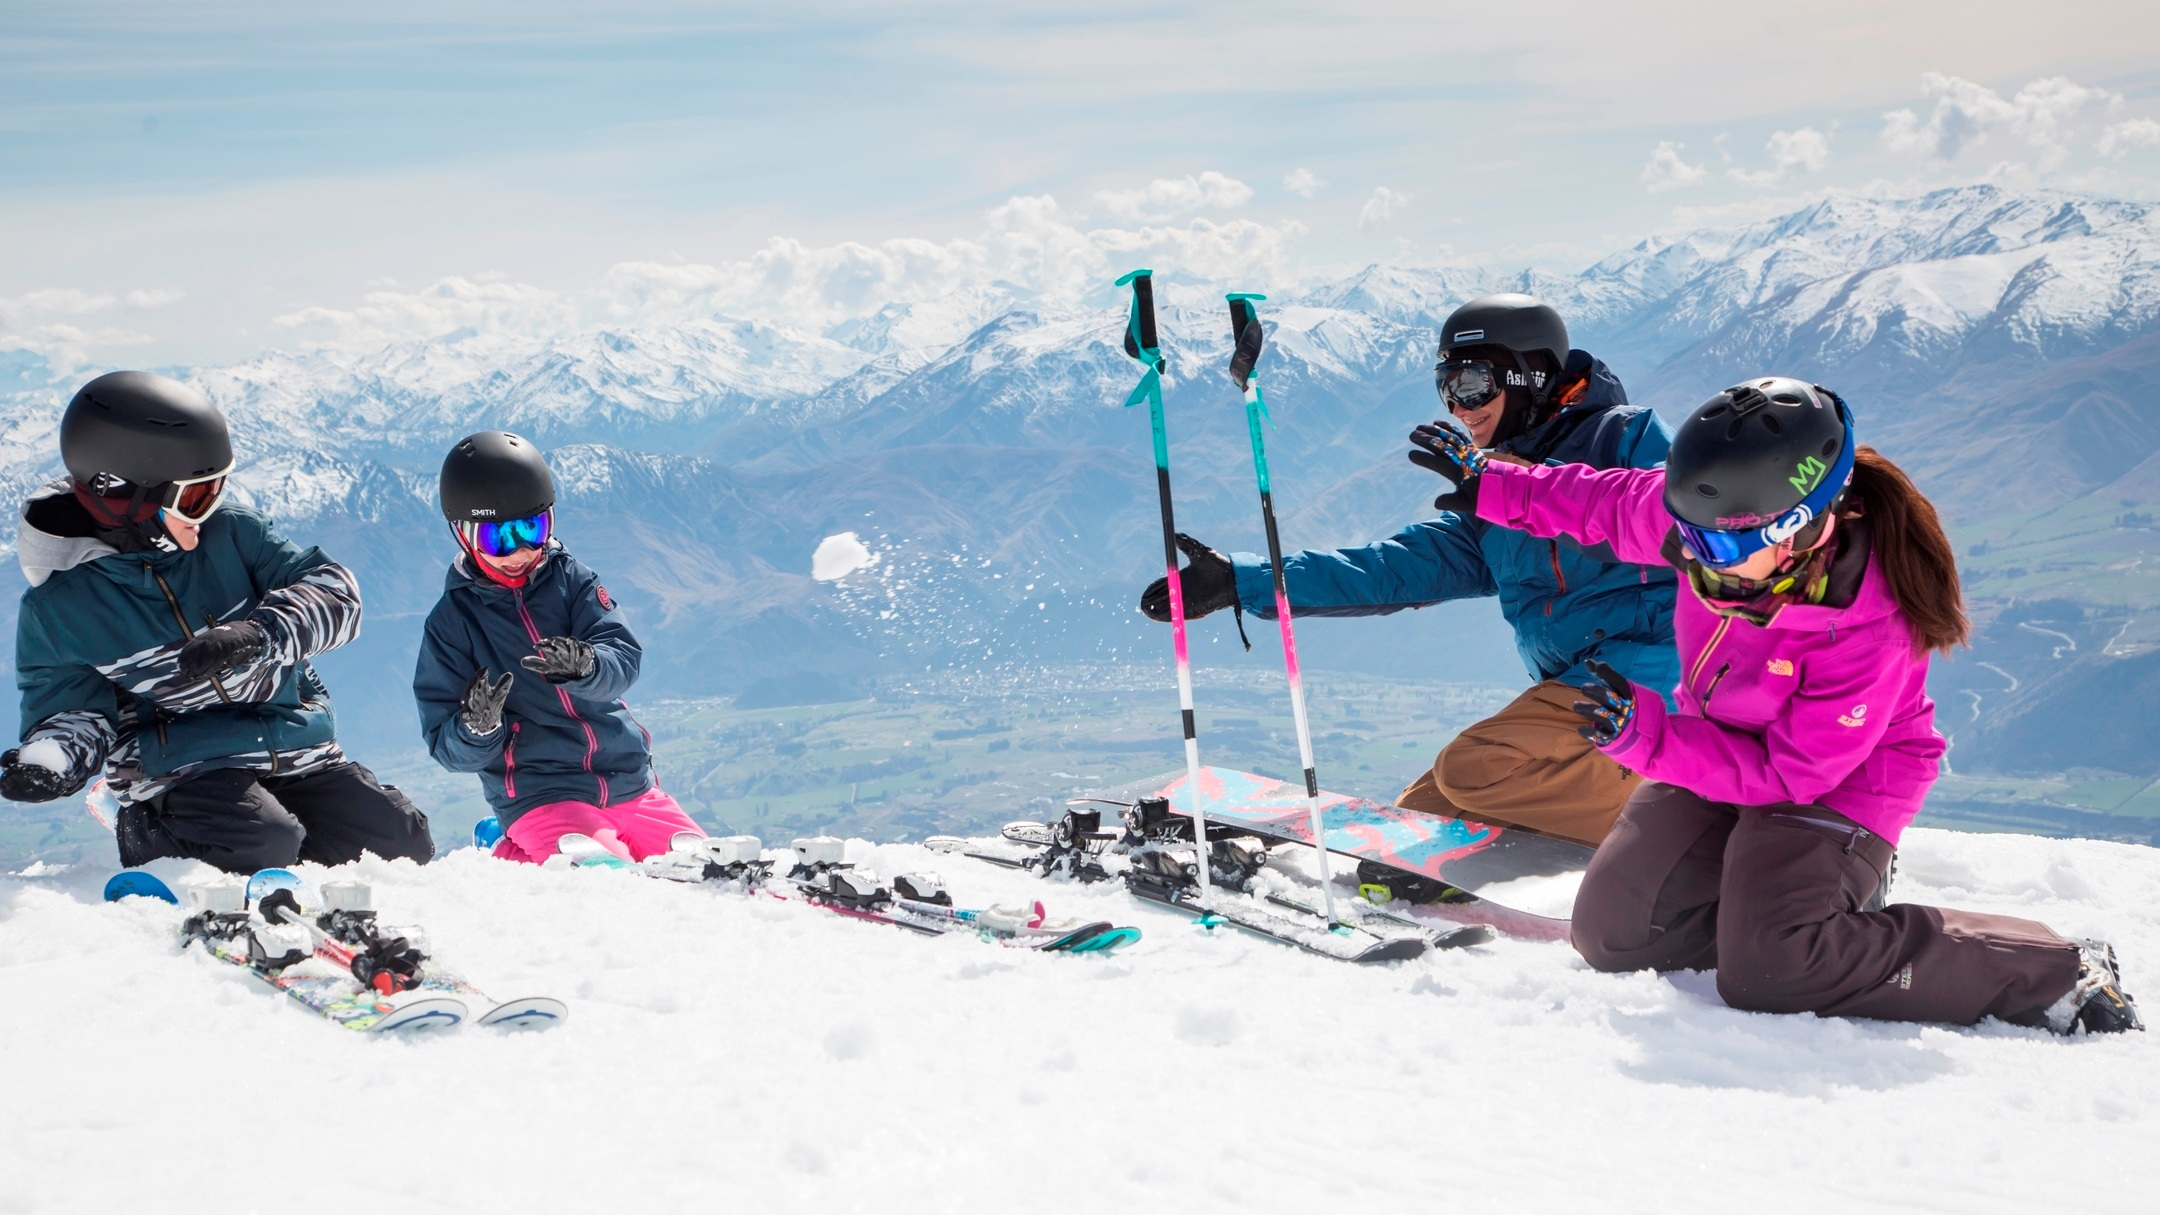 Mabey+Ski_New+Zealand_Queenstown_The+Remarkables_Family+Ski_1.jpg